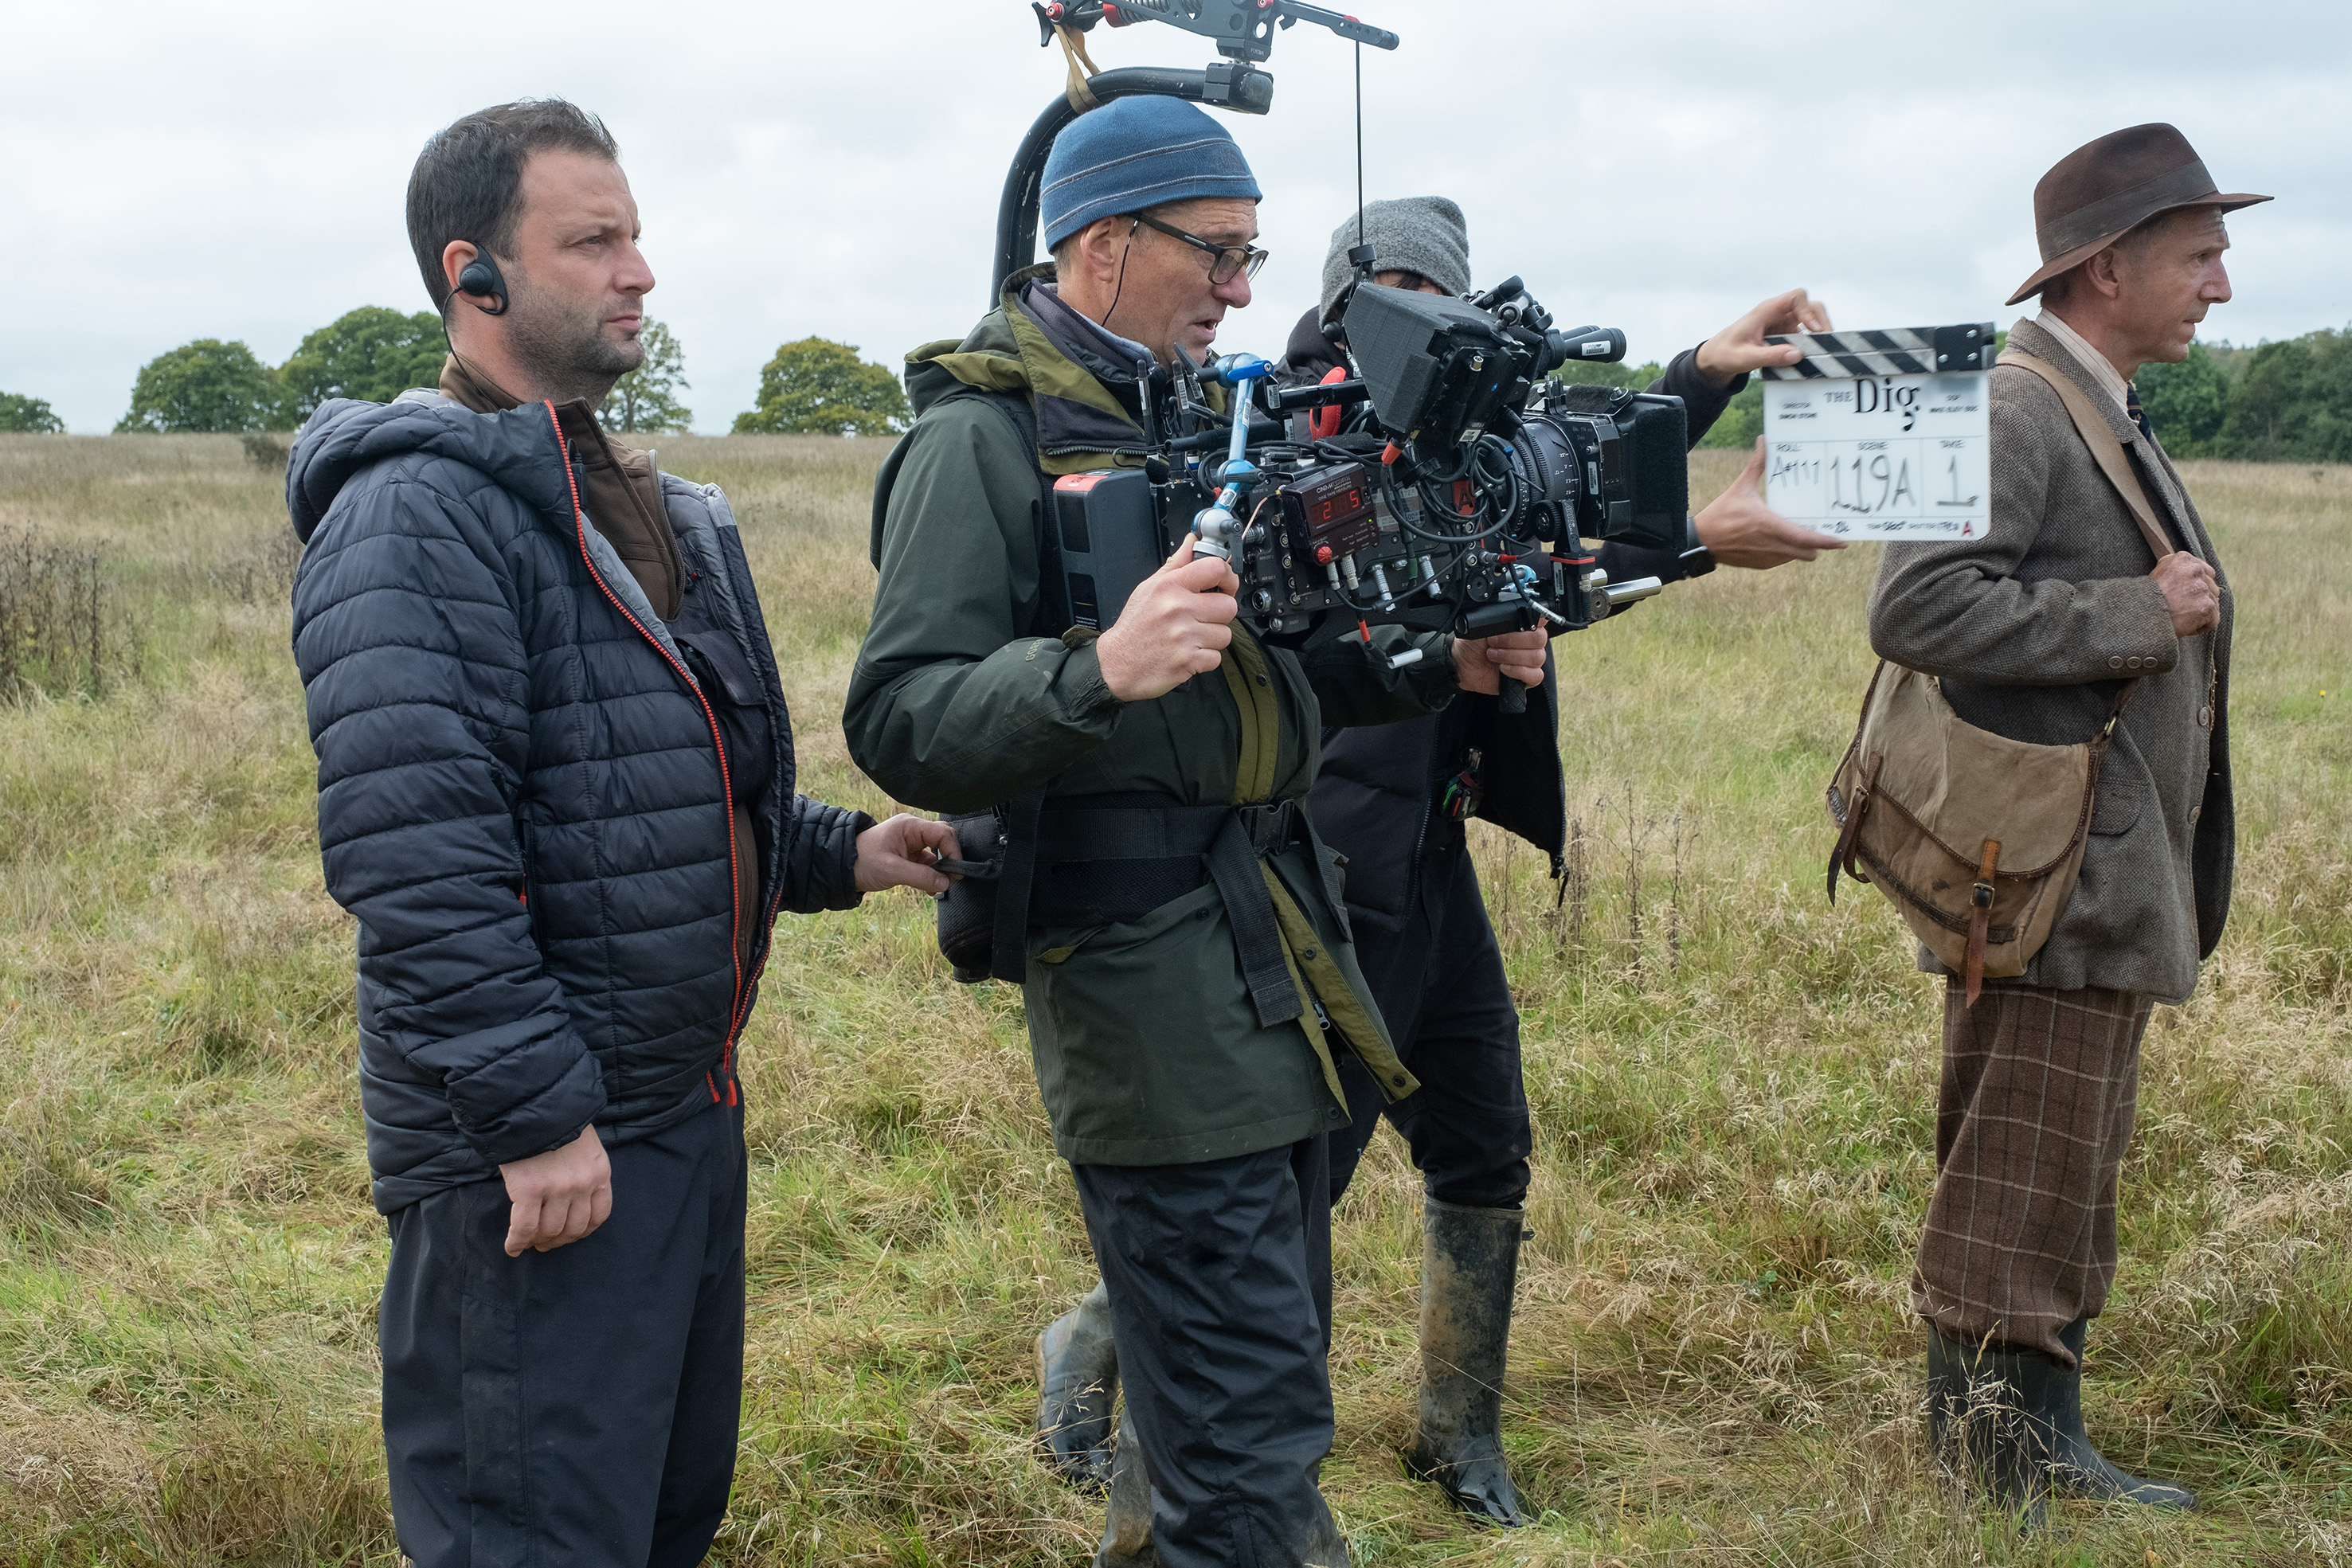 Netflix-The-Dig-ARRI-Rental-DNA-LF-ALEXA-LF-cinematography-Mike-Eley